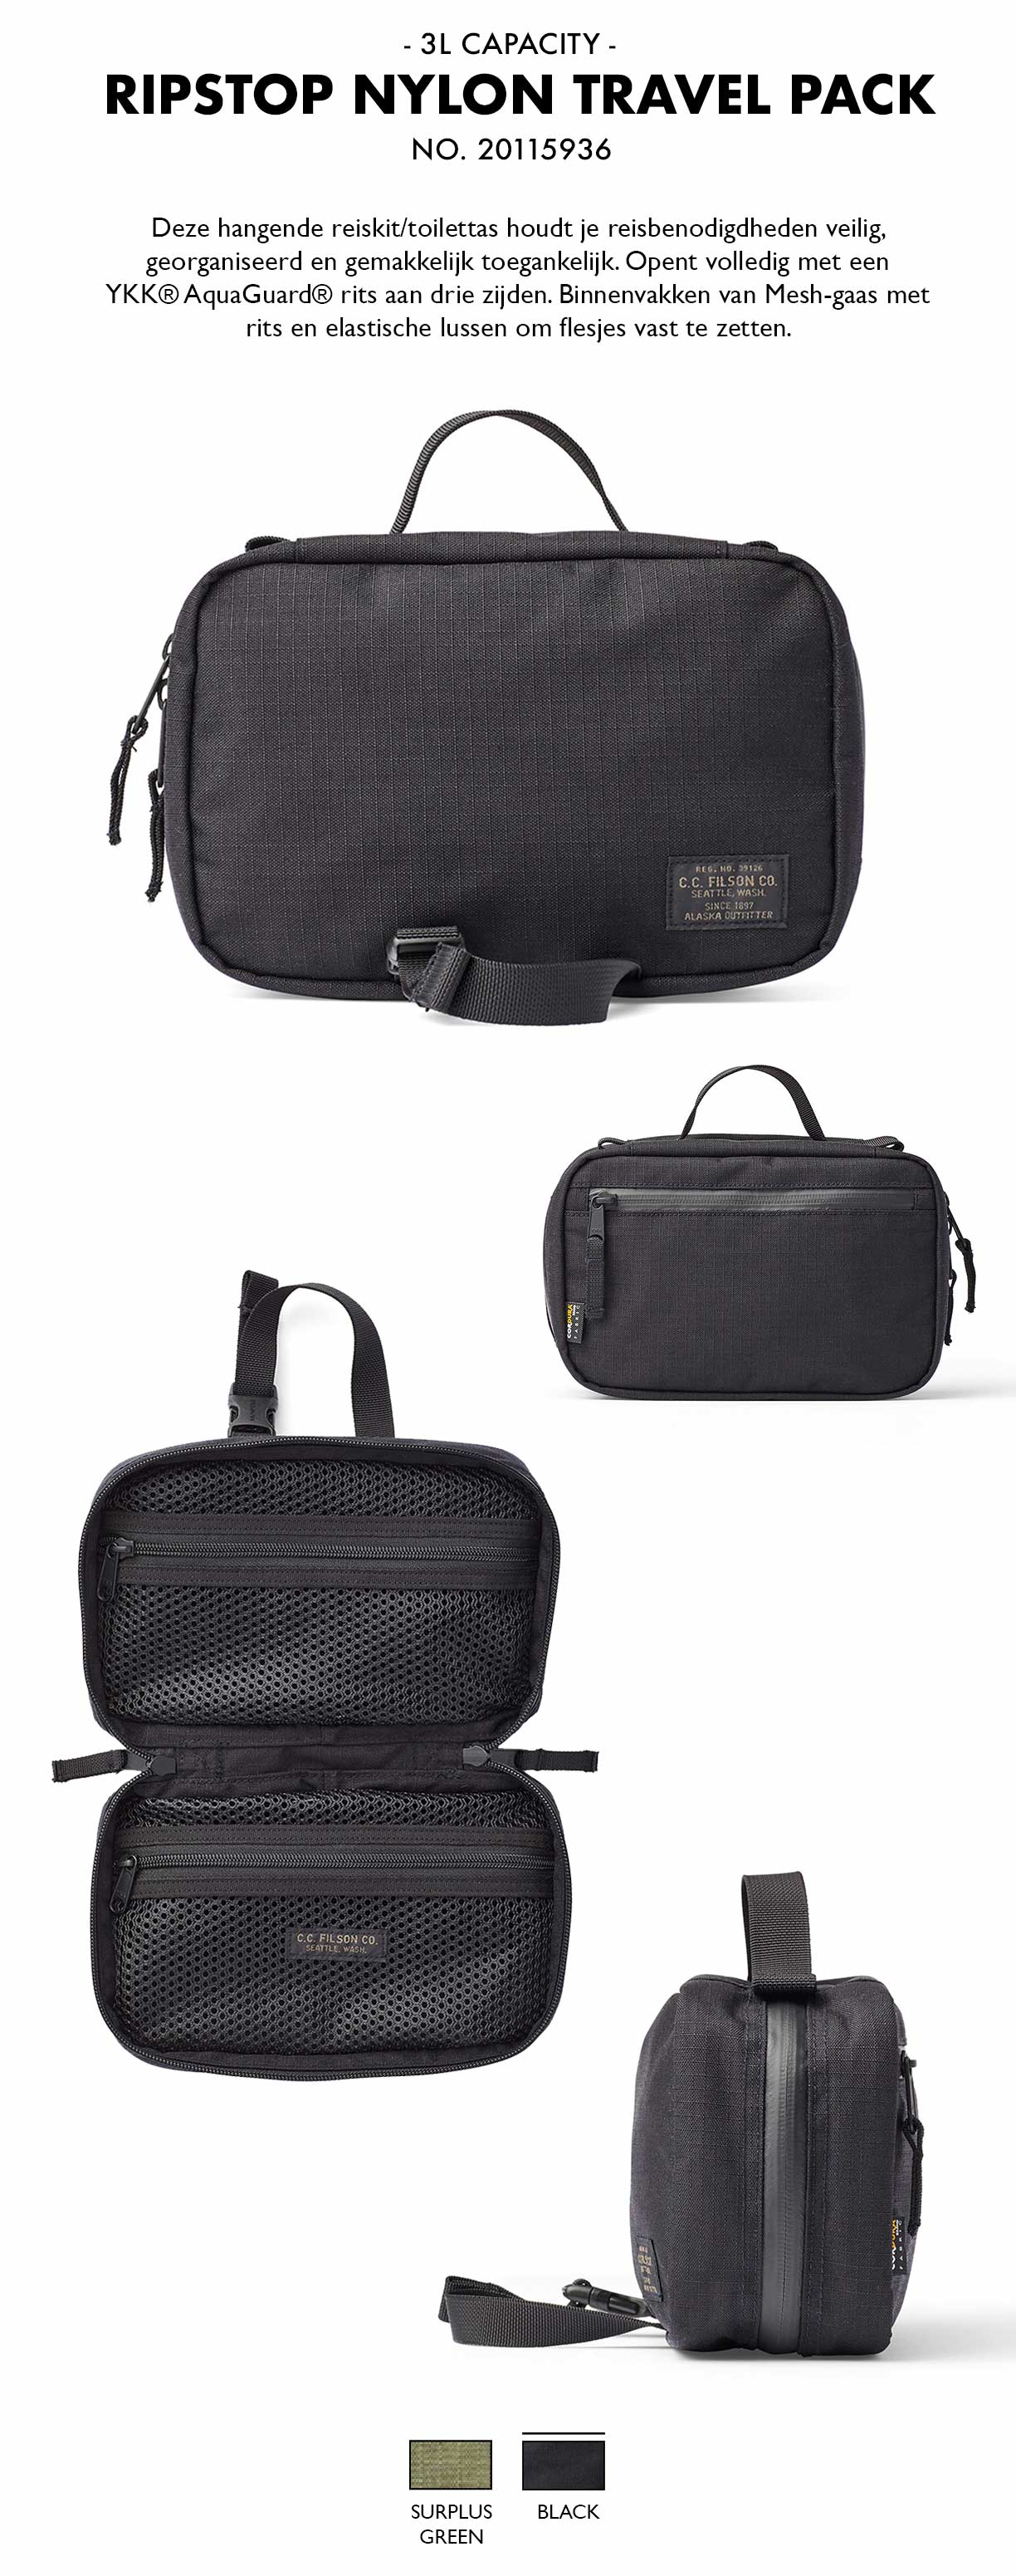 Filson Ripstop Nylon Travel Pack Black Product-informatie